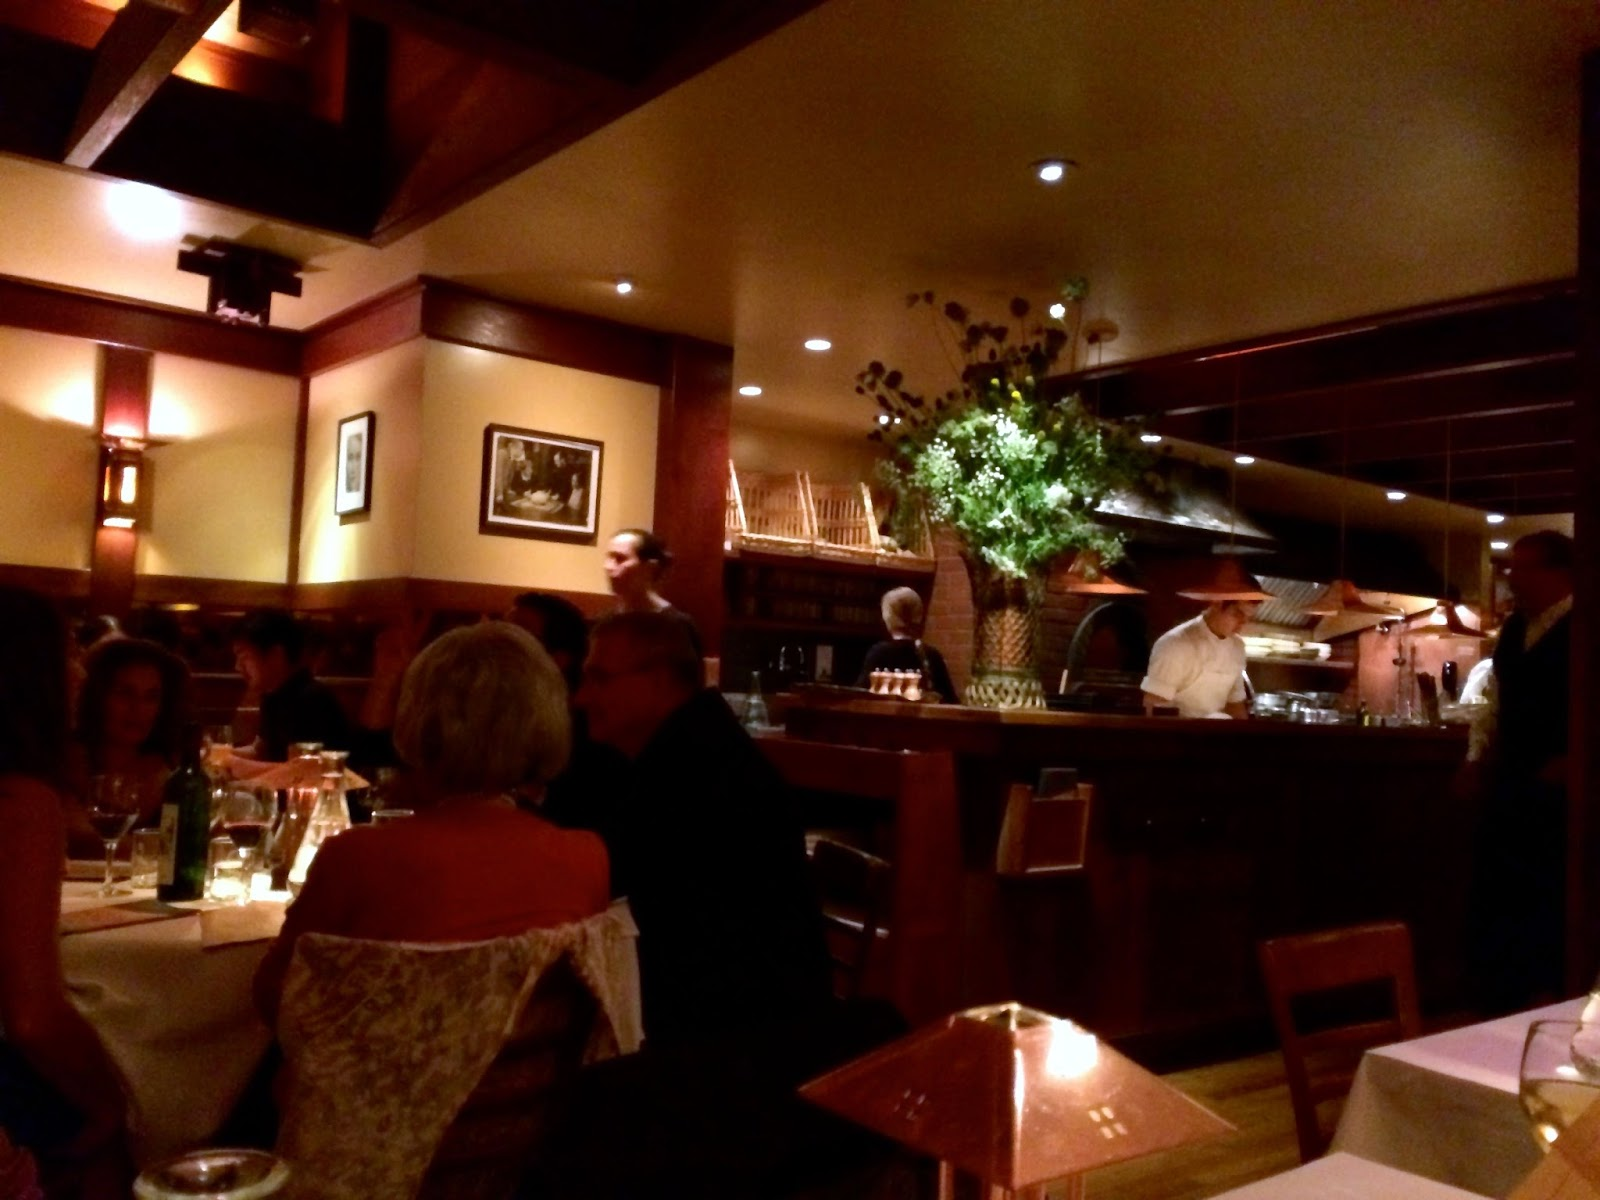 Chez Panisse Cafe on a weeknight